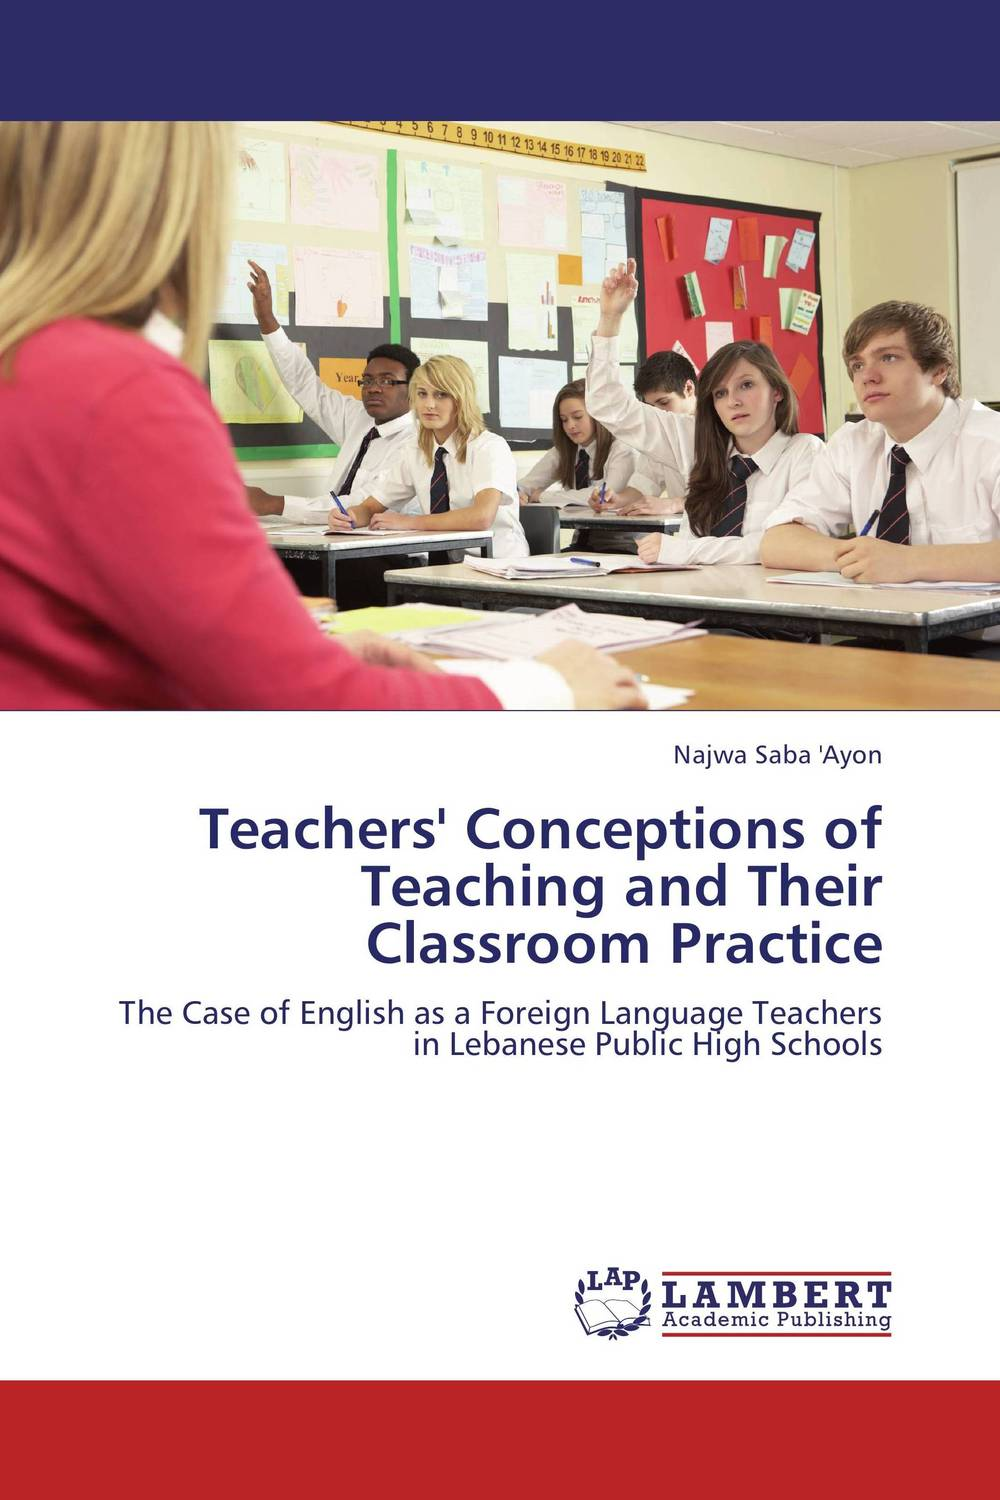 Teachers' Conceptions of Teaching and Their Classroom Practice